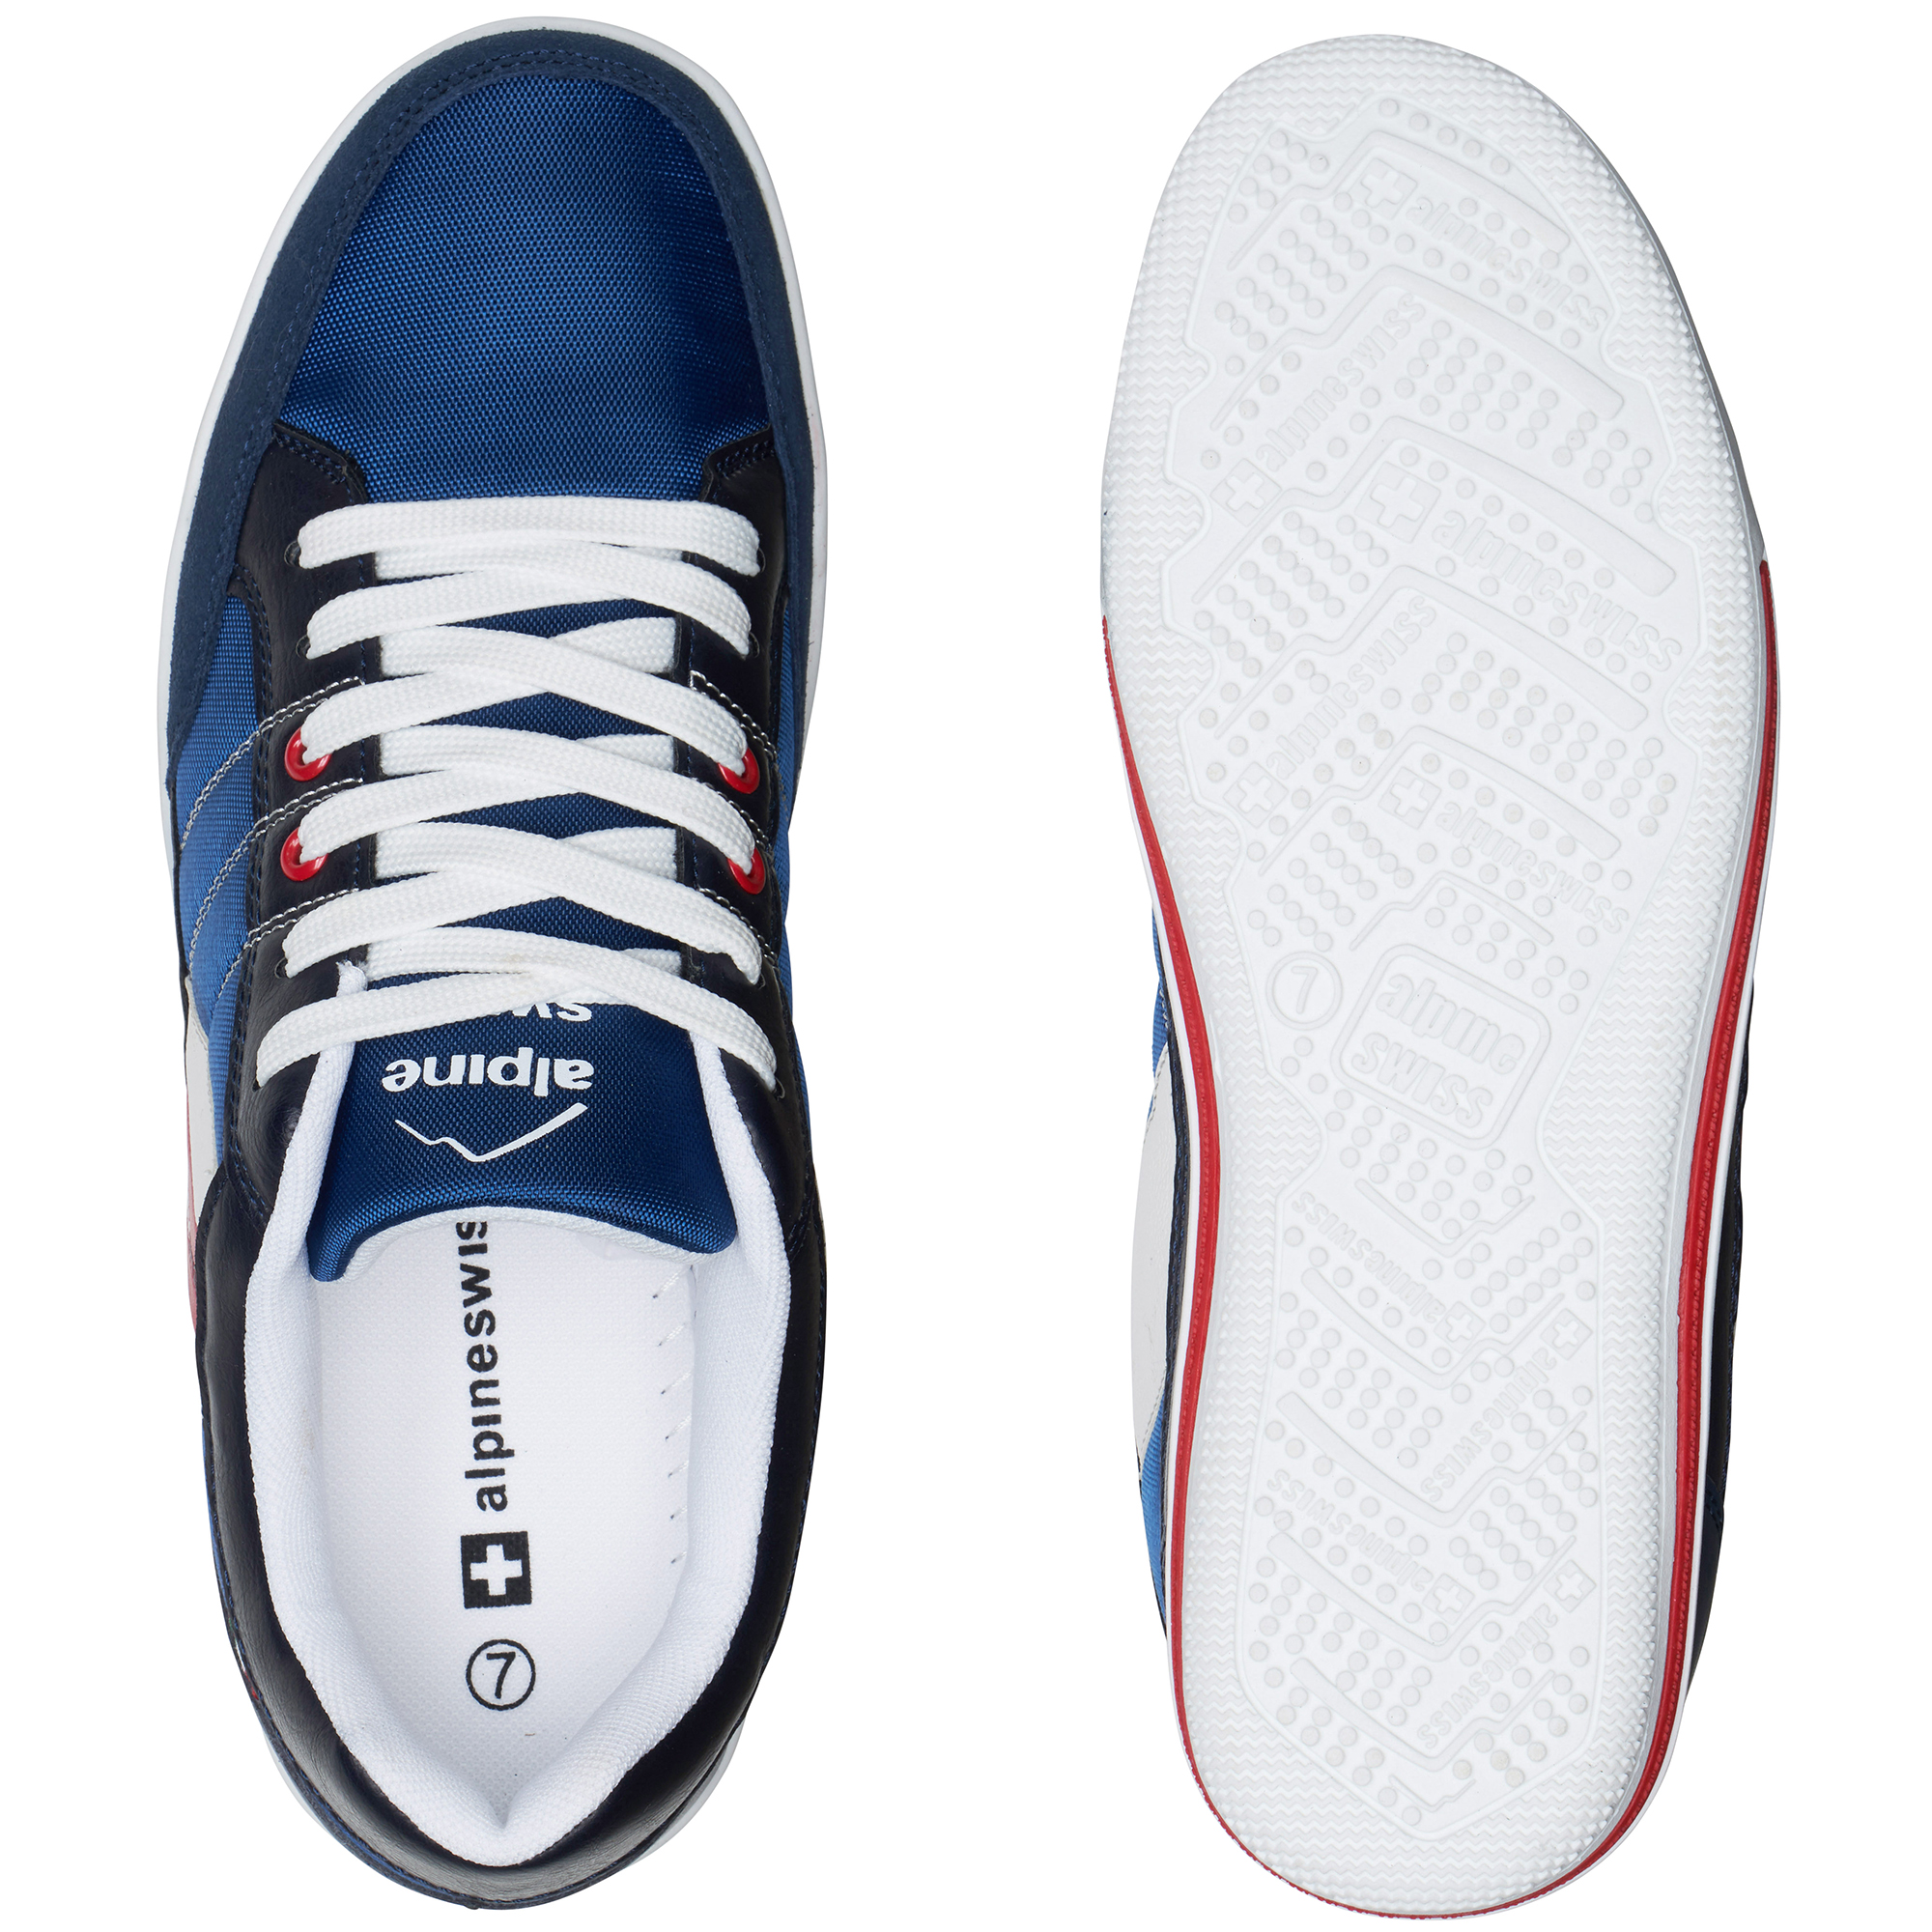 Alpine-Swiss-Stefan-Mens-Retro-Fashion-Sneakers-Tennis-Shoes-Casual-Athletic-New thumbnail 31